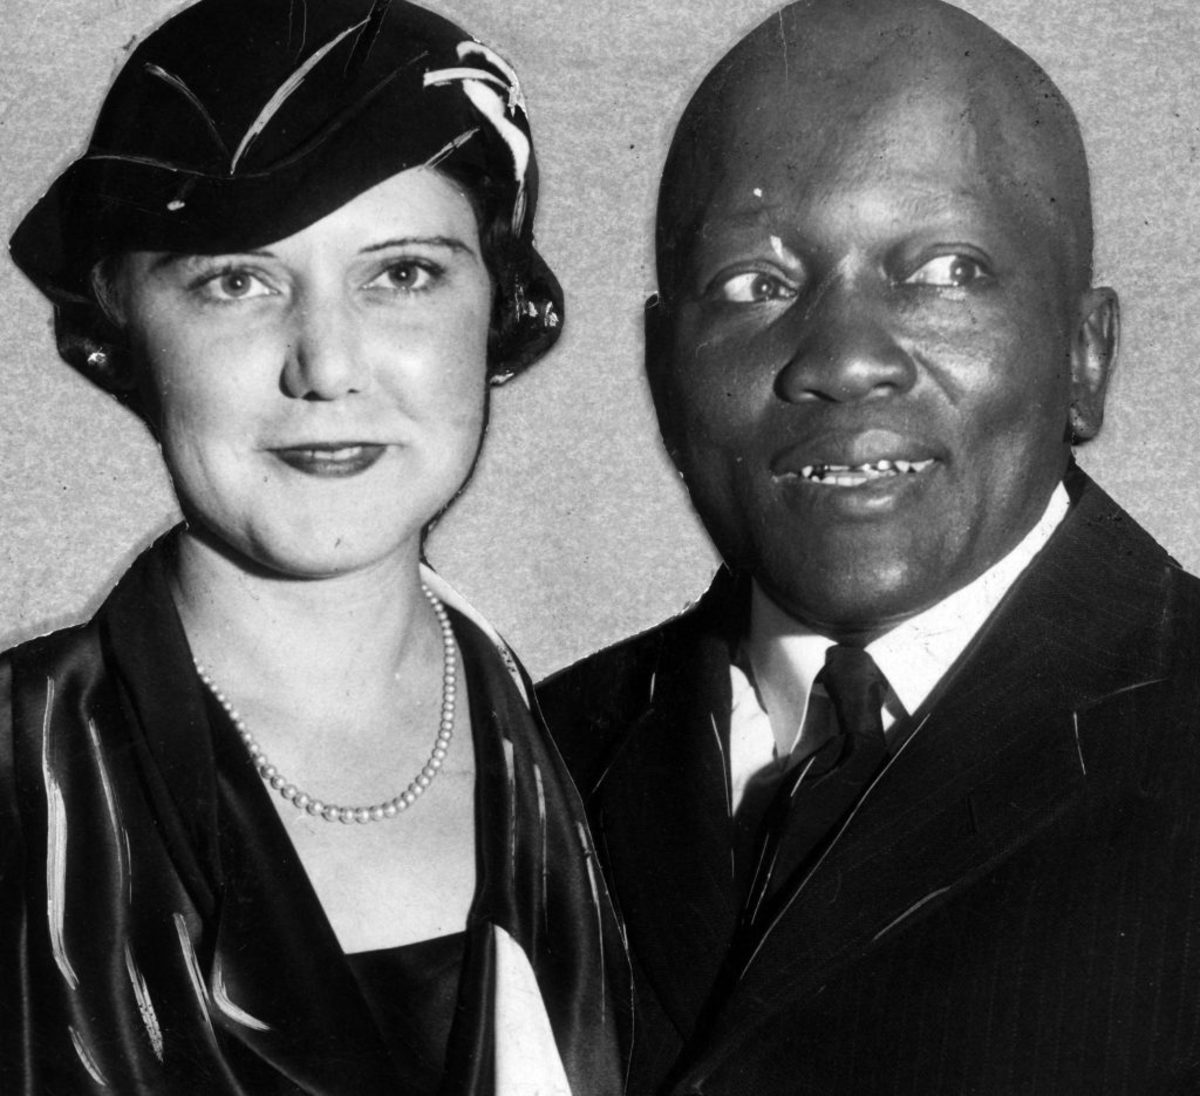 Jack Johnson with his second wife Lucille Cameron, 1920. (Credit: Afro American Newspapers/Gado/Getty Images)